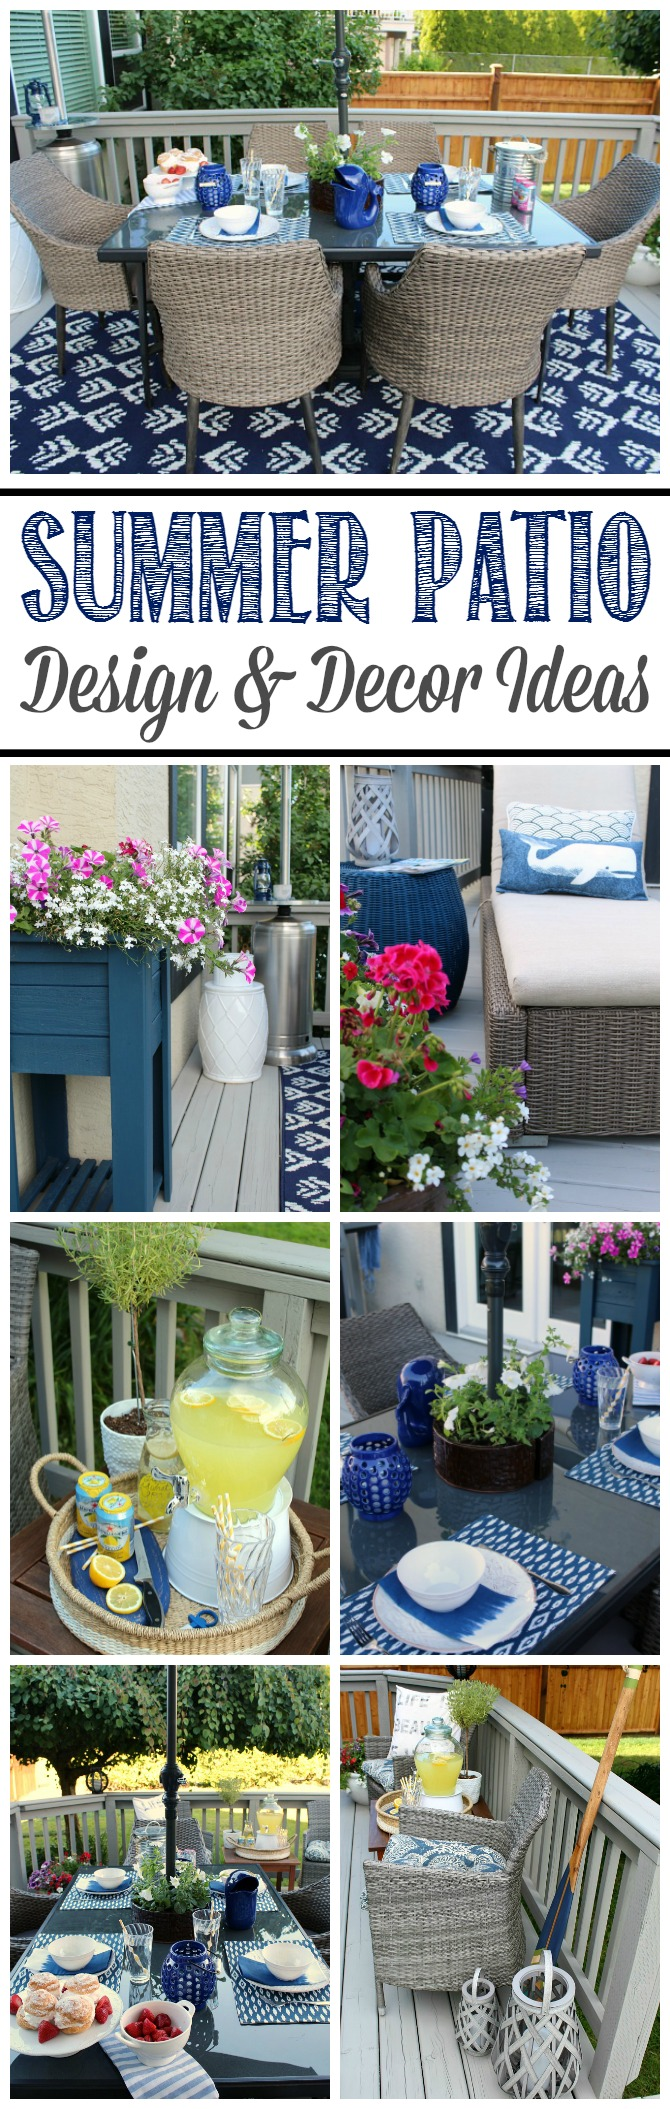 Beautiful summer patio ideas including patio furniture, decor items, and planted flower designs.